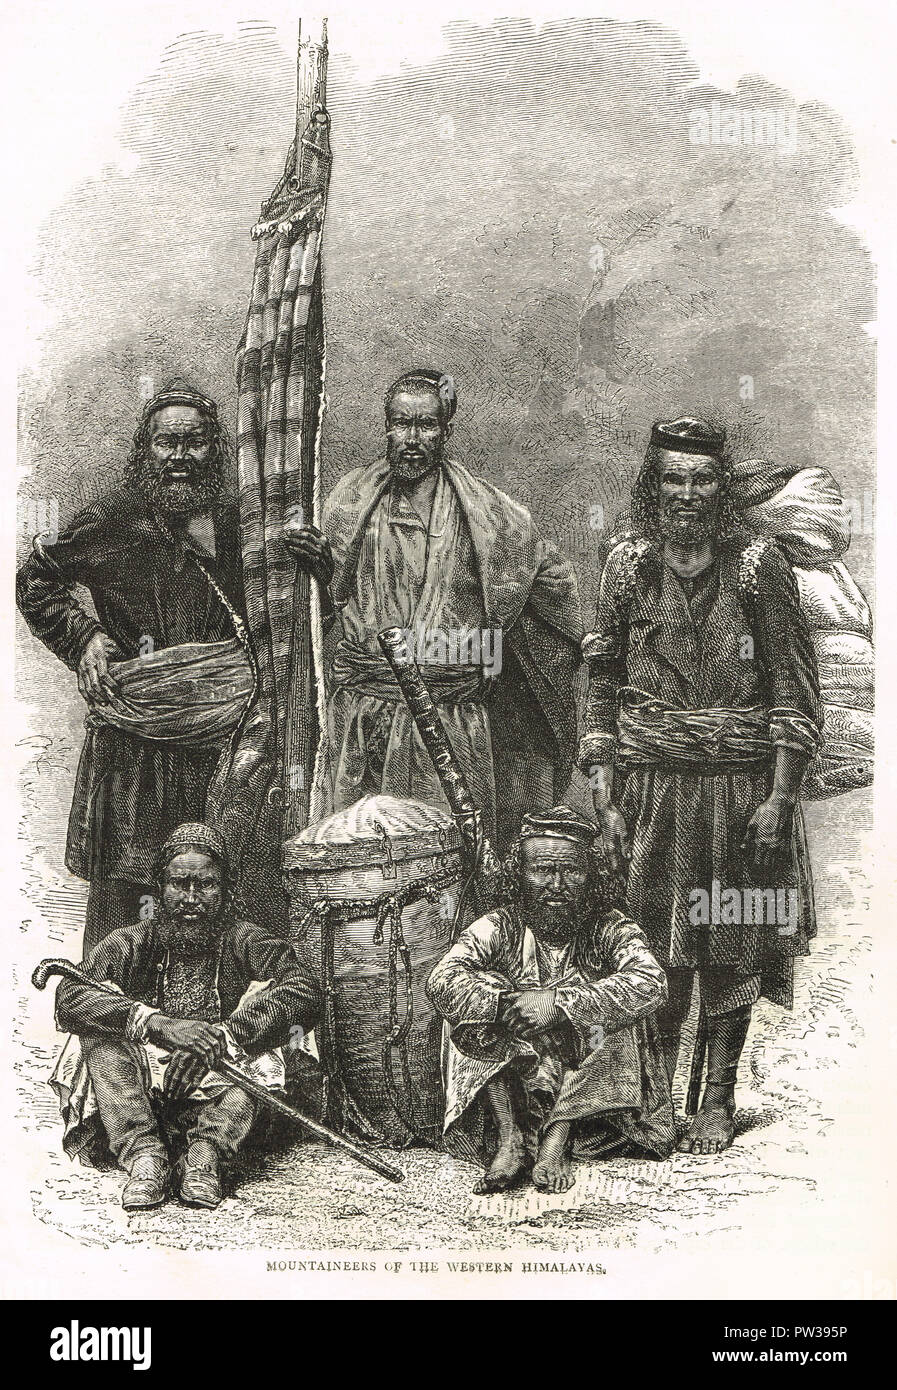 Mountaineers of the western Himalayas, 19th century - Stock Image